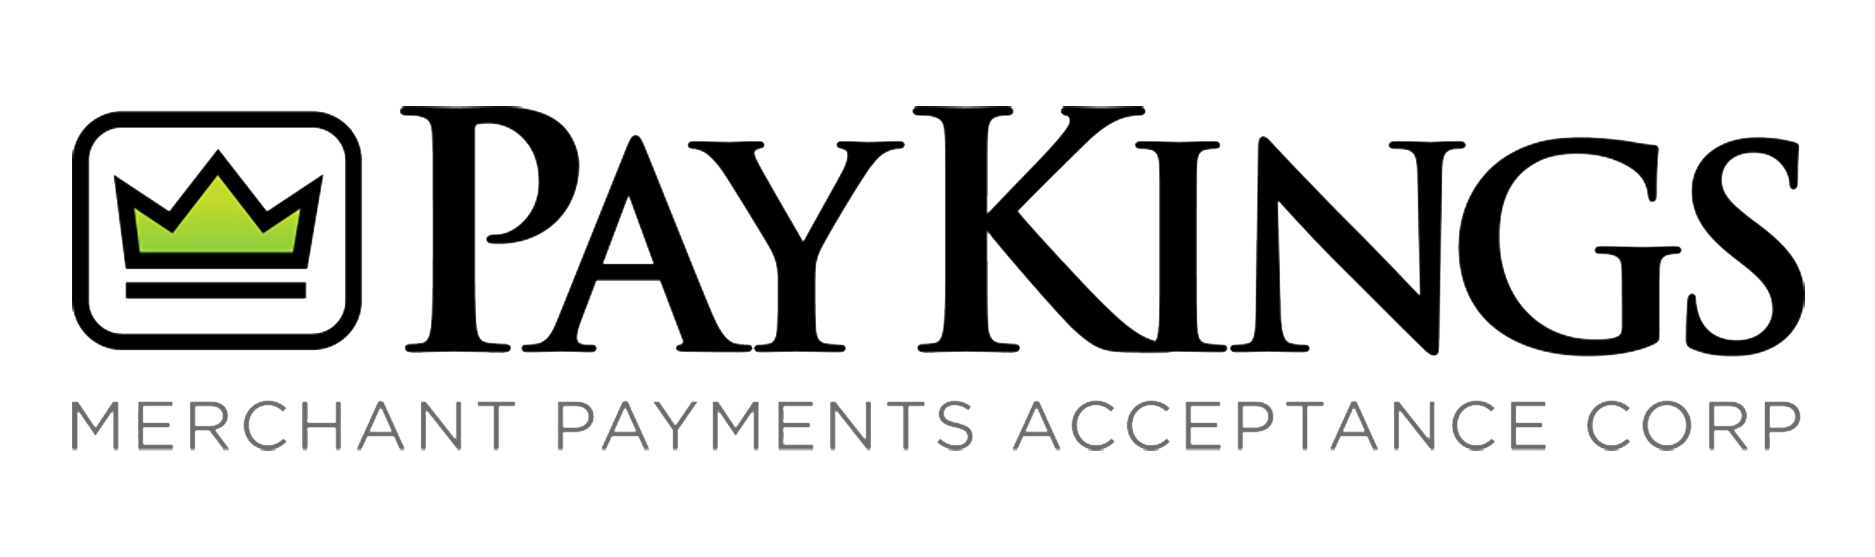 https://www.mercuryminds.com/wp-content/uploads/2016/09/paykings-logo.png